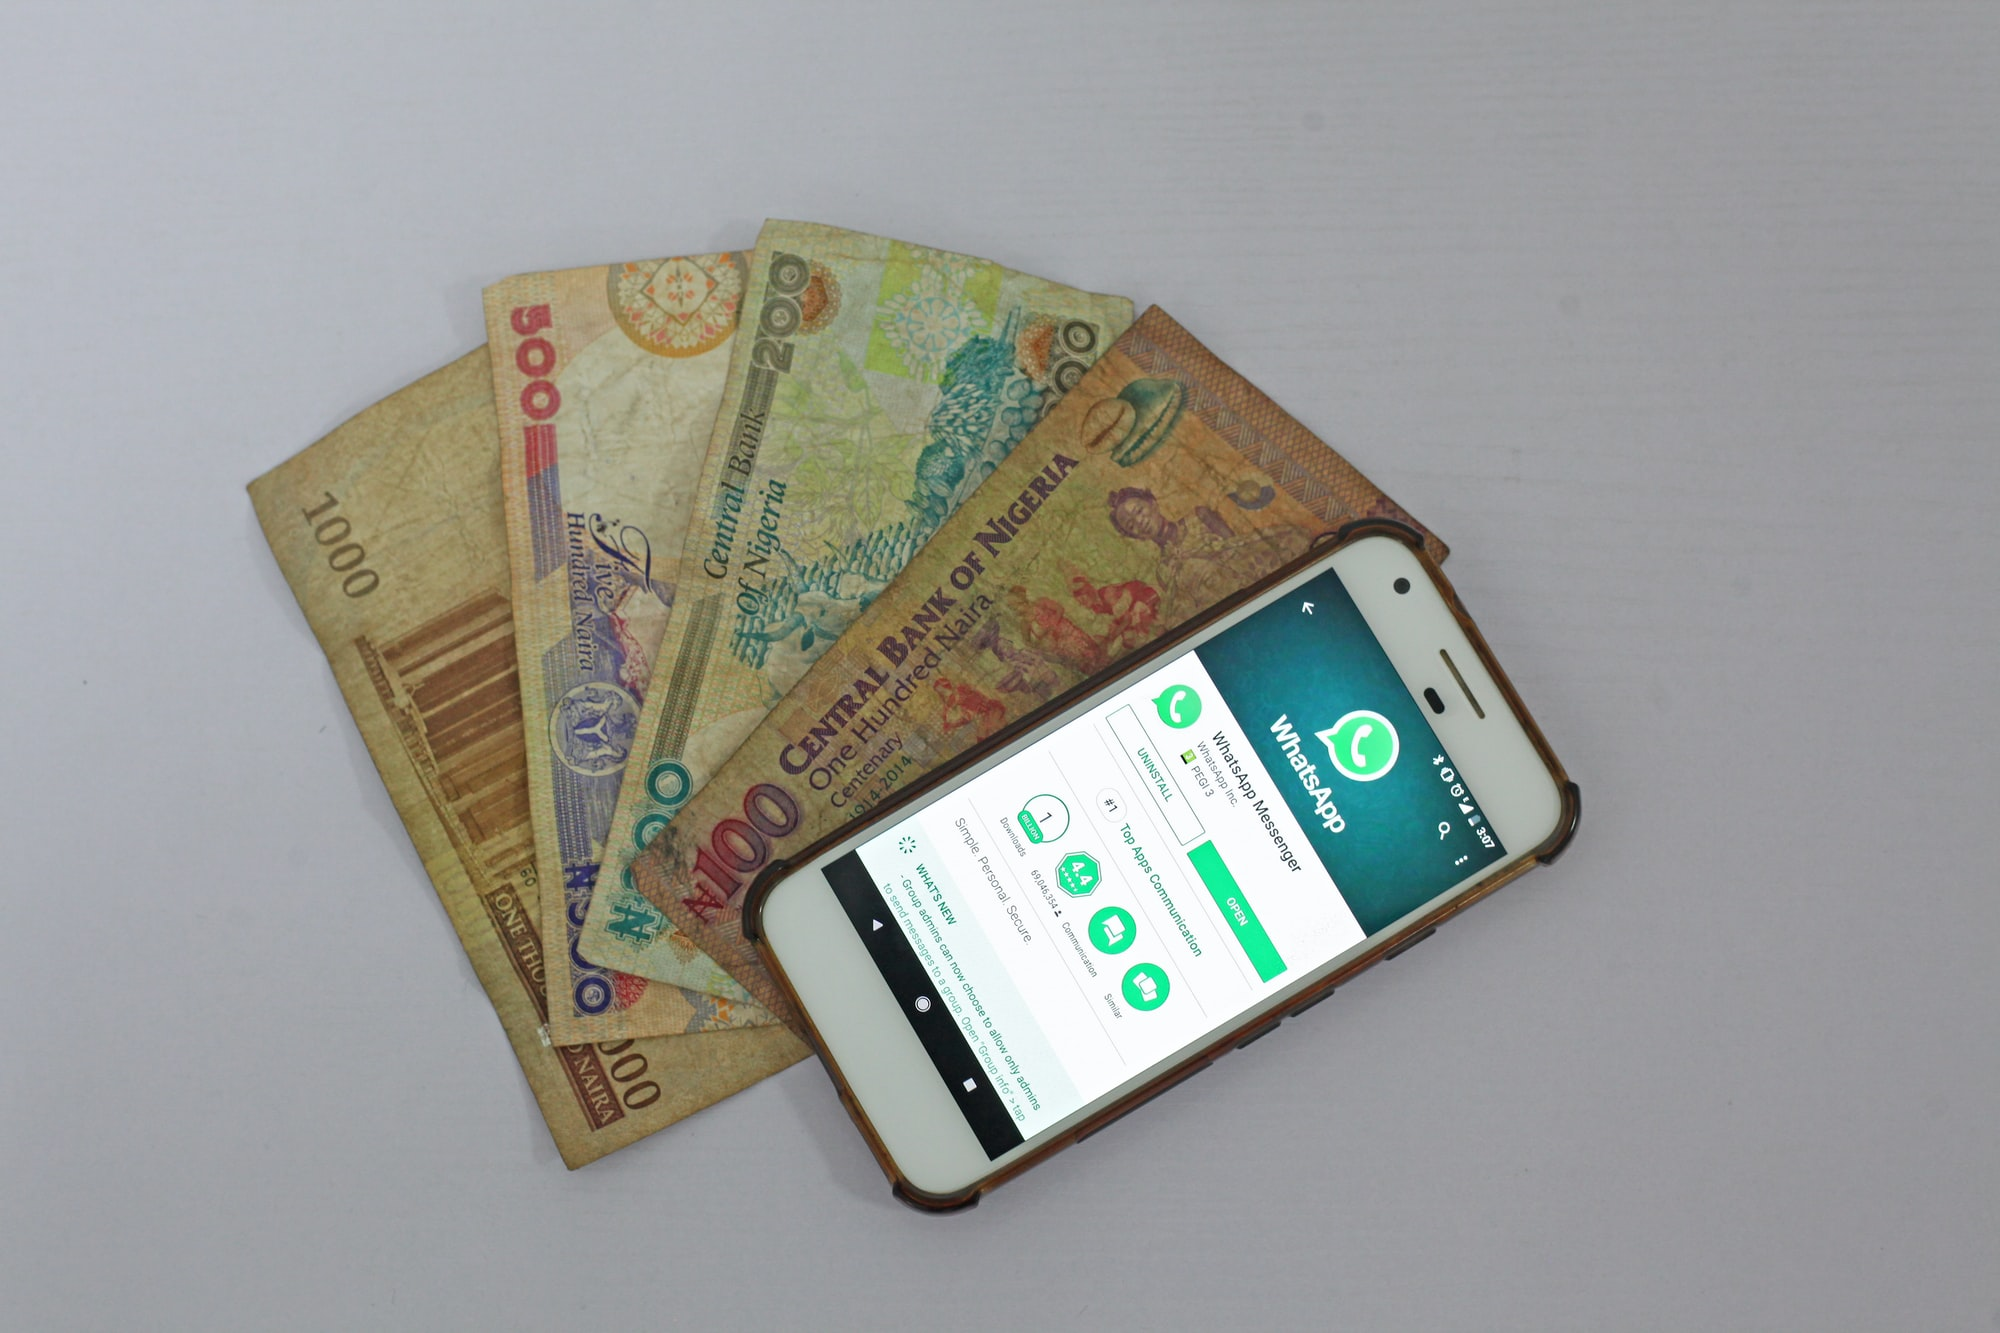 UNAJUA S7 EP2: Digital money 2.0 - Whose liability is it anyway? feat. Ronit Ghose